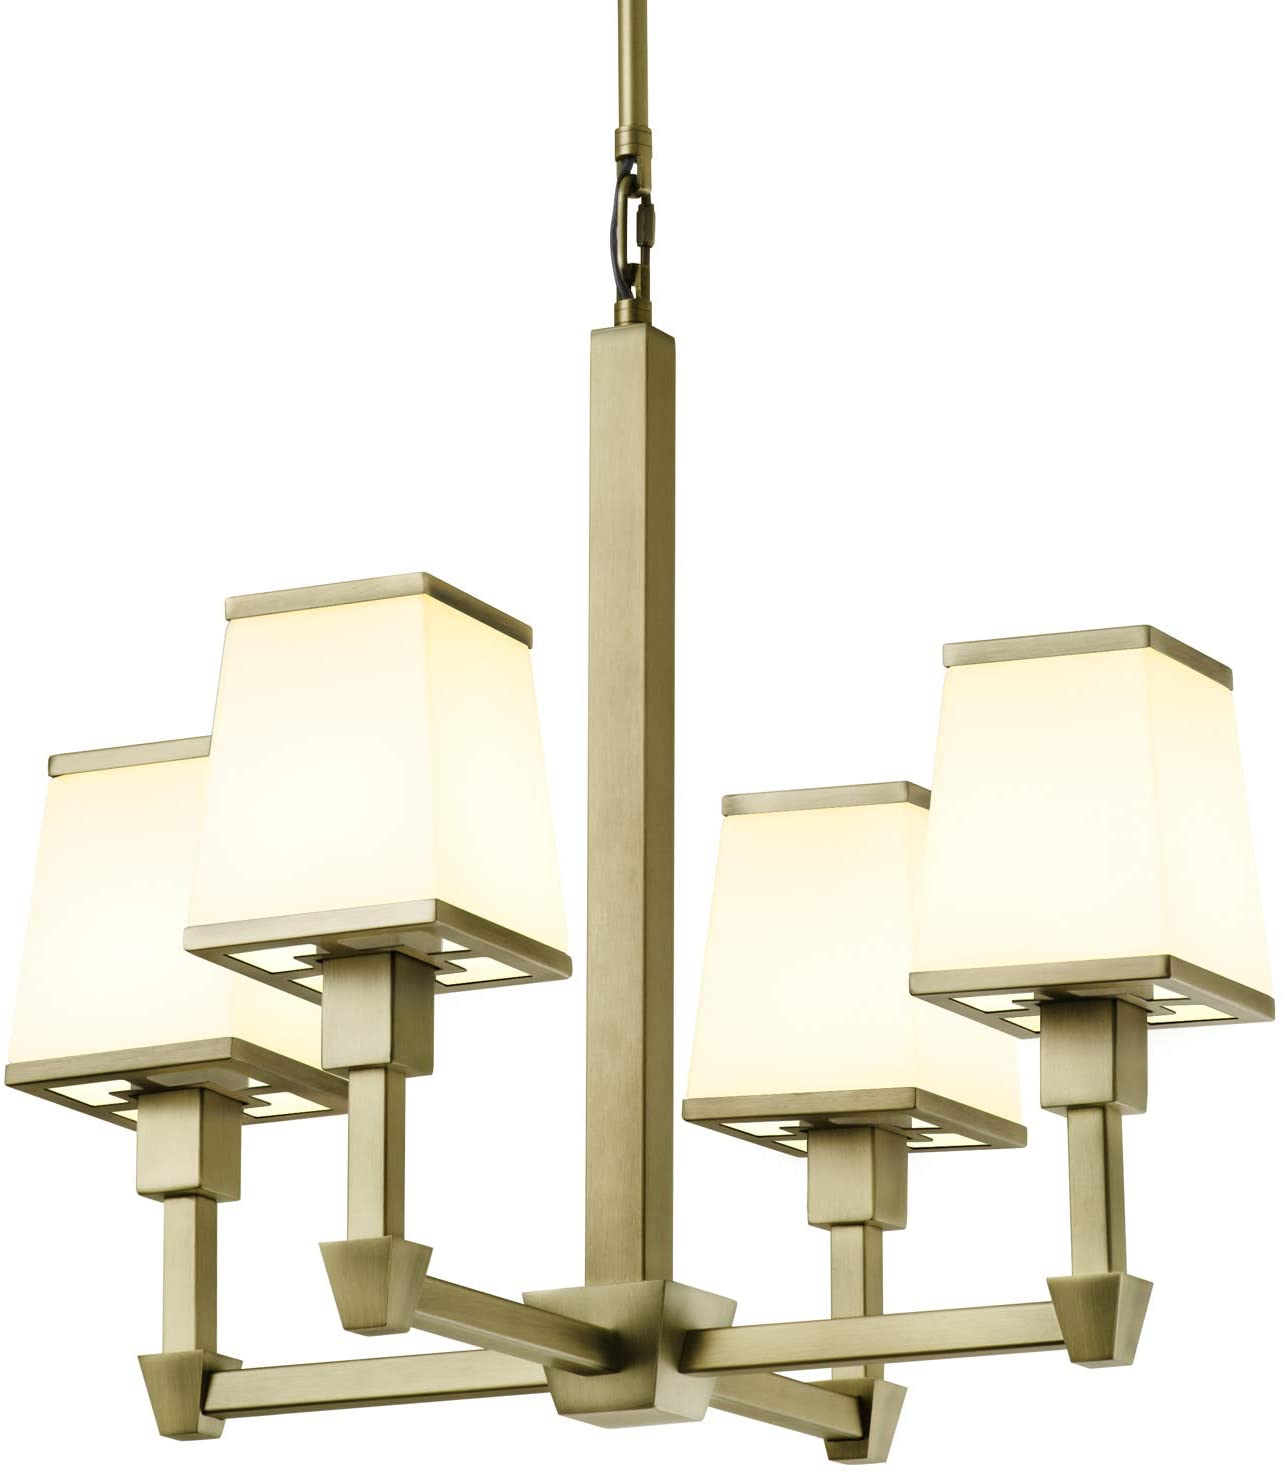 Brass 4-Light Round Chandelier - Hanging Ceiling Fixture with Tapered Glass Shades, Adjustable Height, Damp Located, Dimmable, ETL Listed - Kingston Collection by Brooklyn Bulb Collection